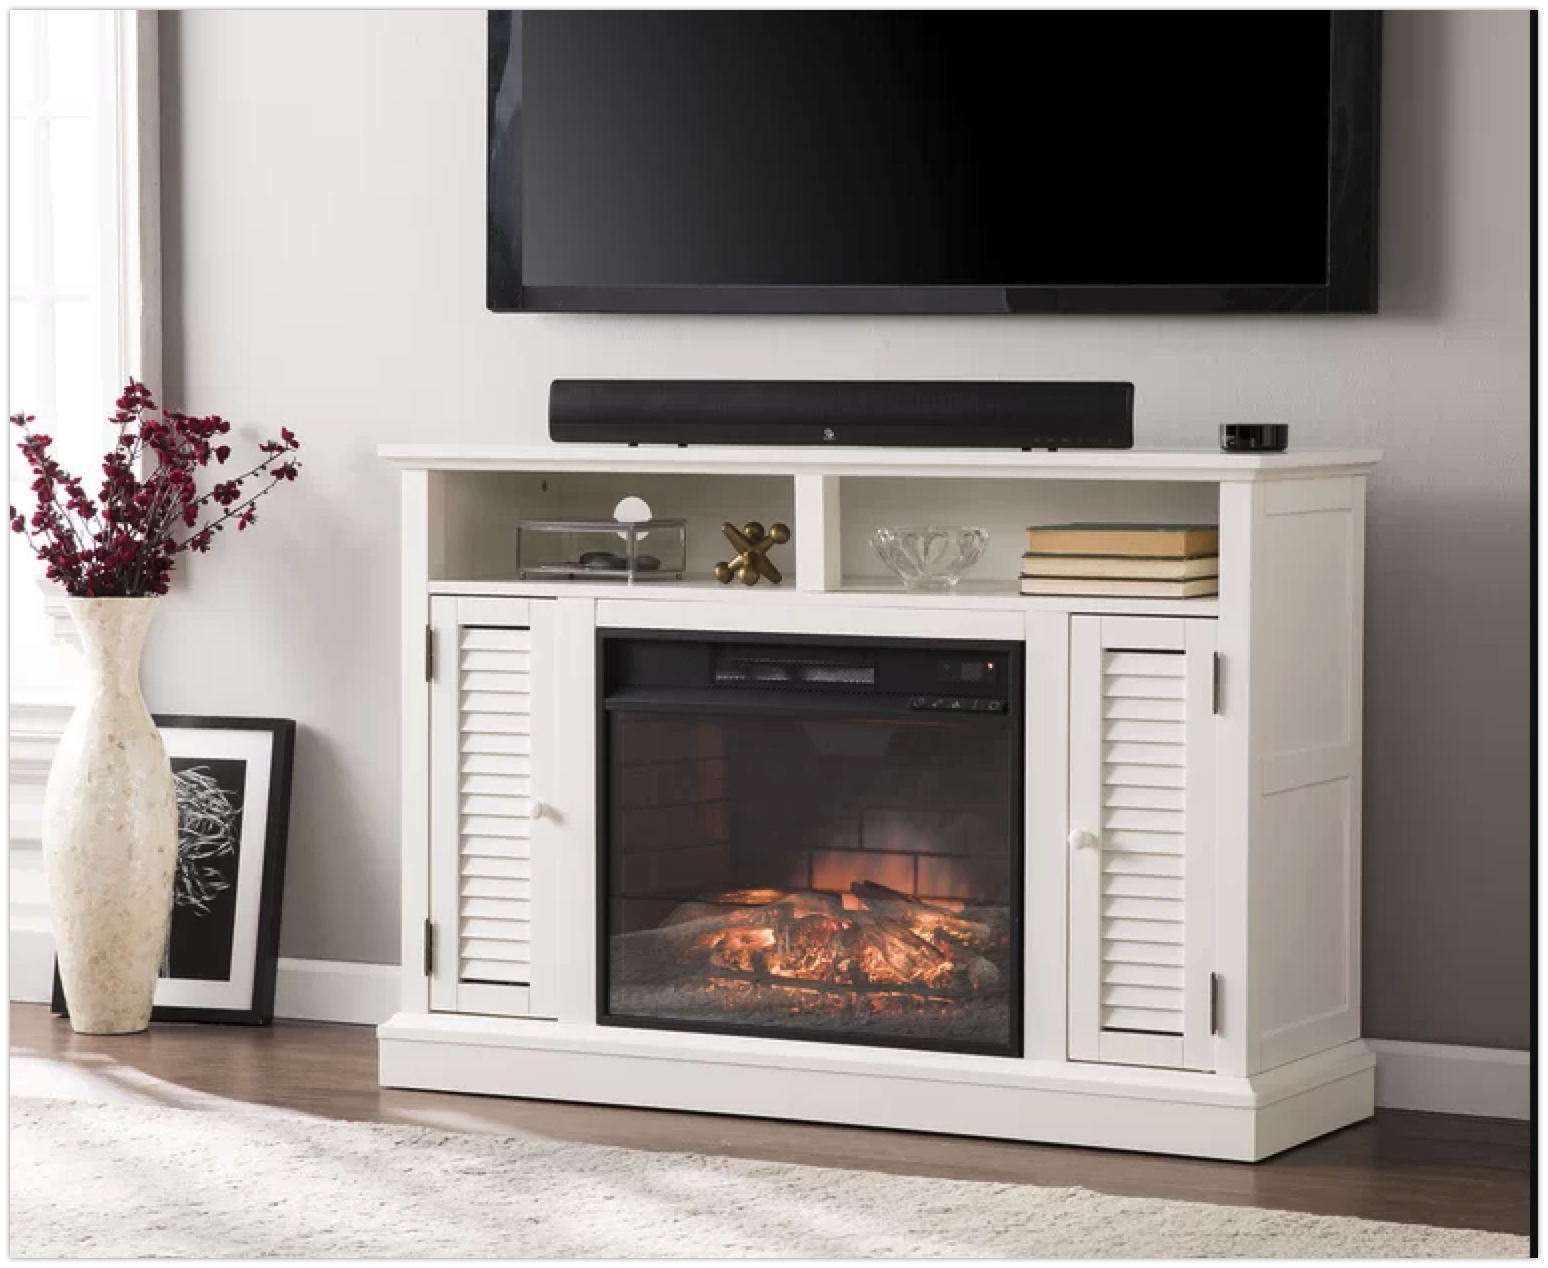 lombardy-tv-stand-white-fireplace